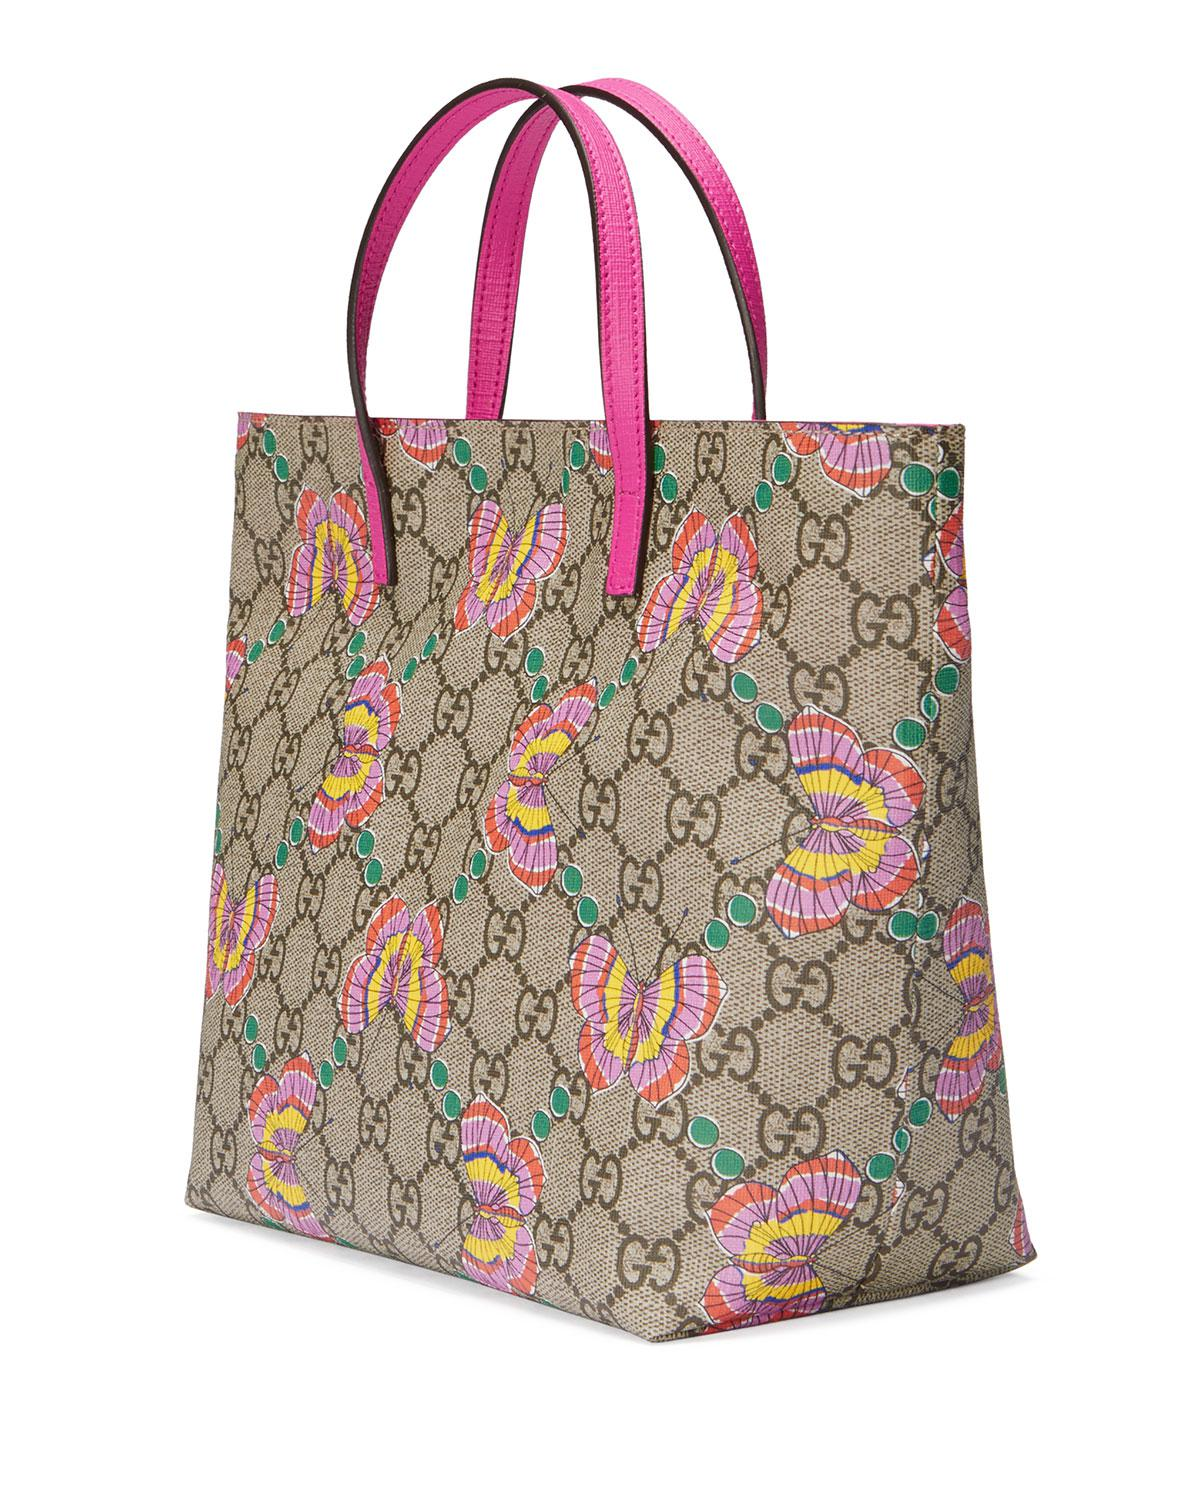 564465b36d37 Gucci Girls' Gg Supreme Butterfly Tote Bag in Natural - Lyst